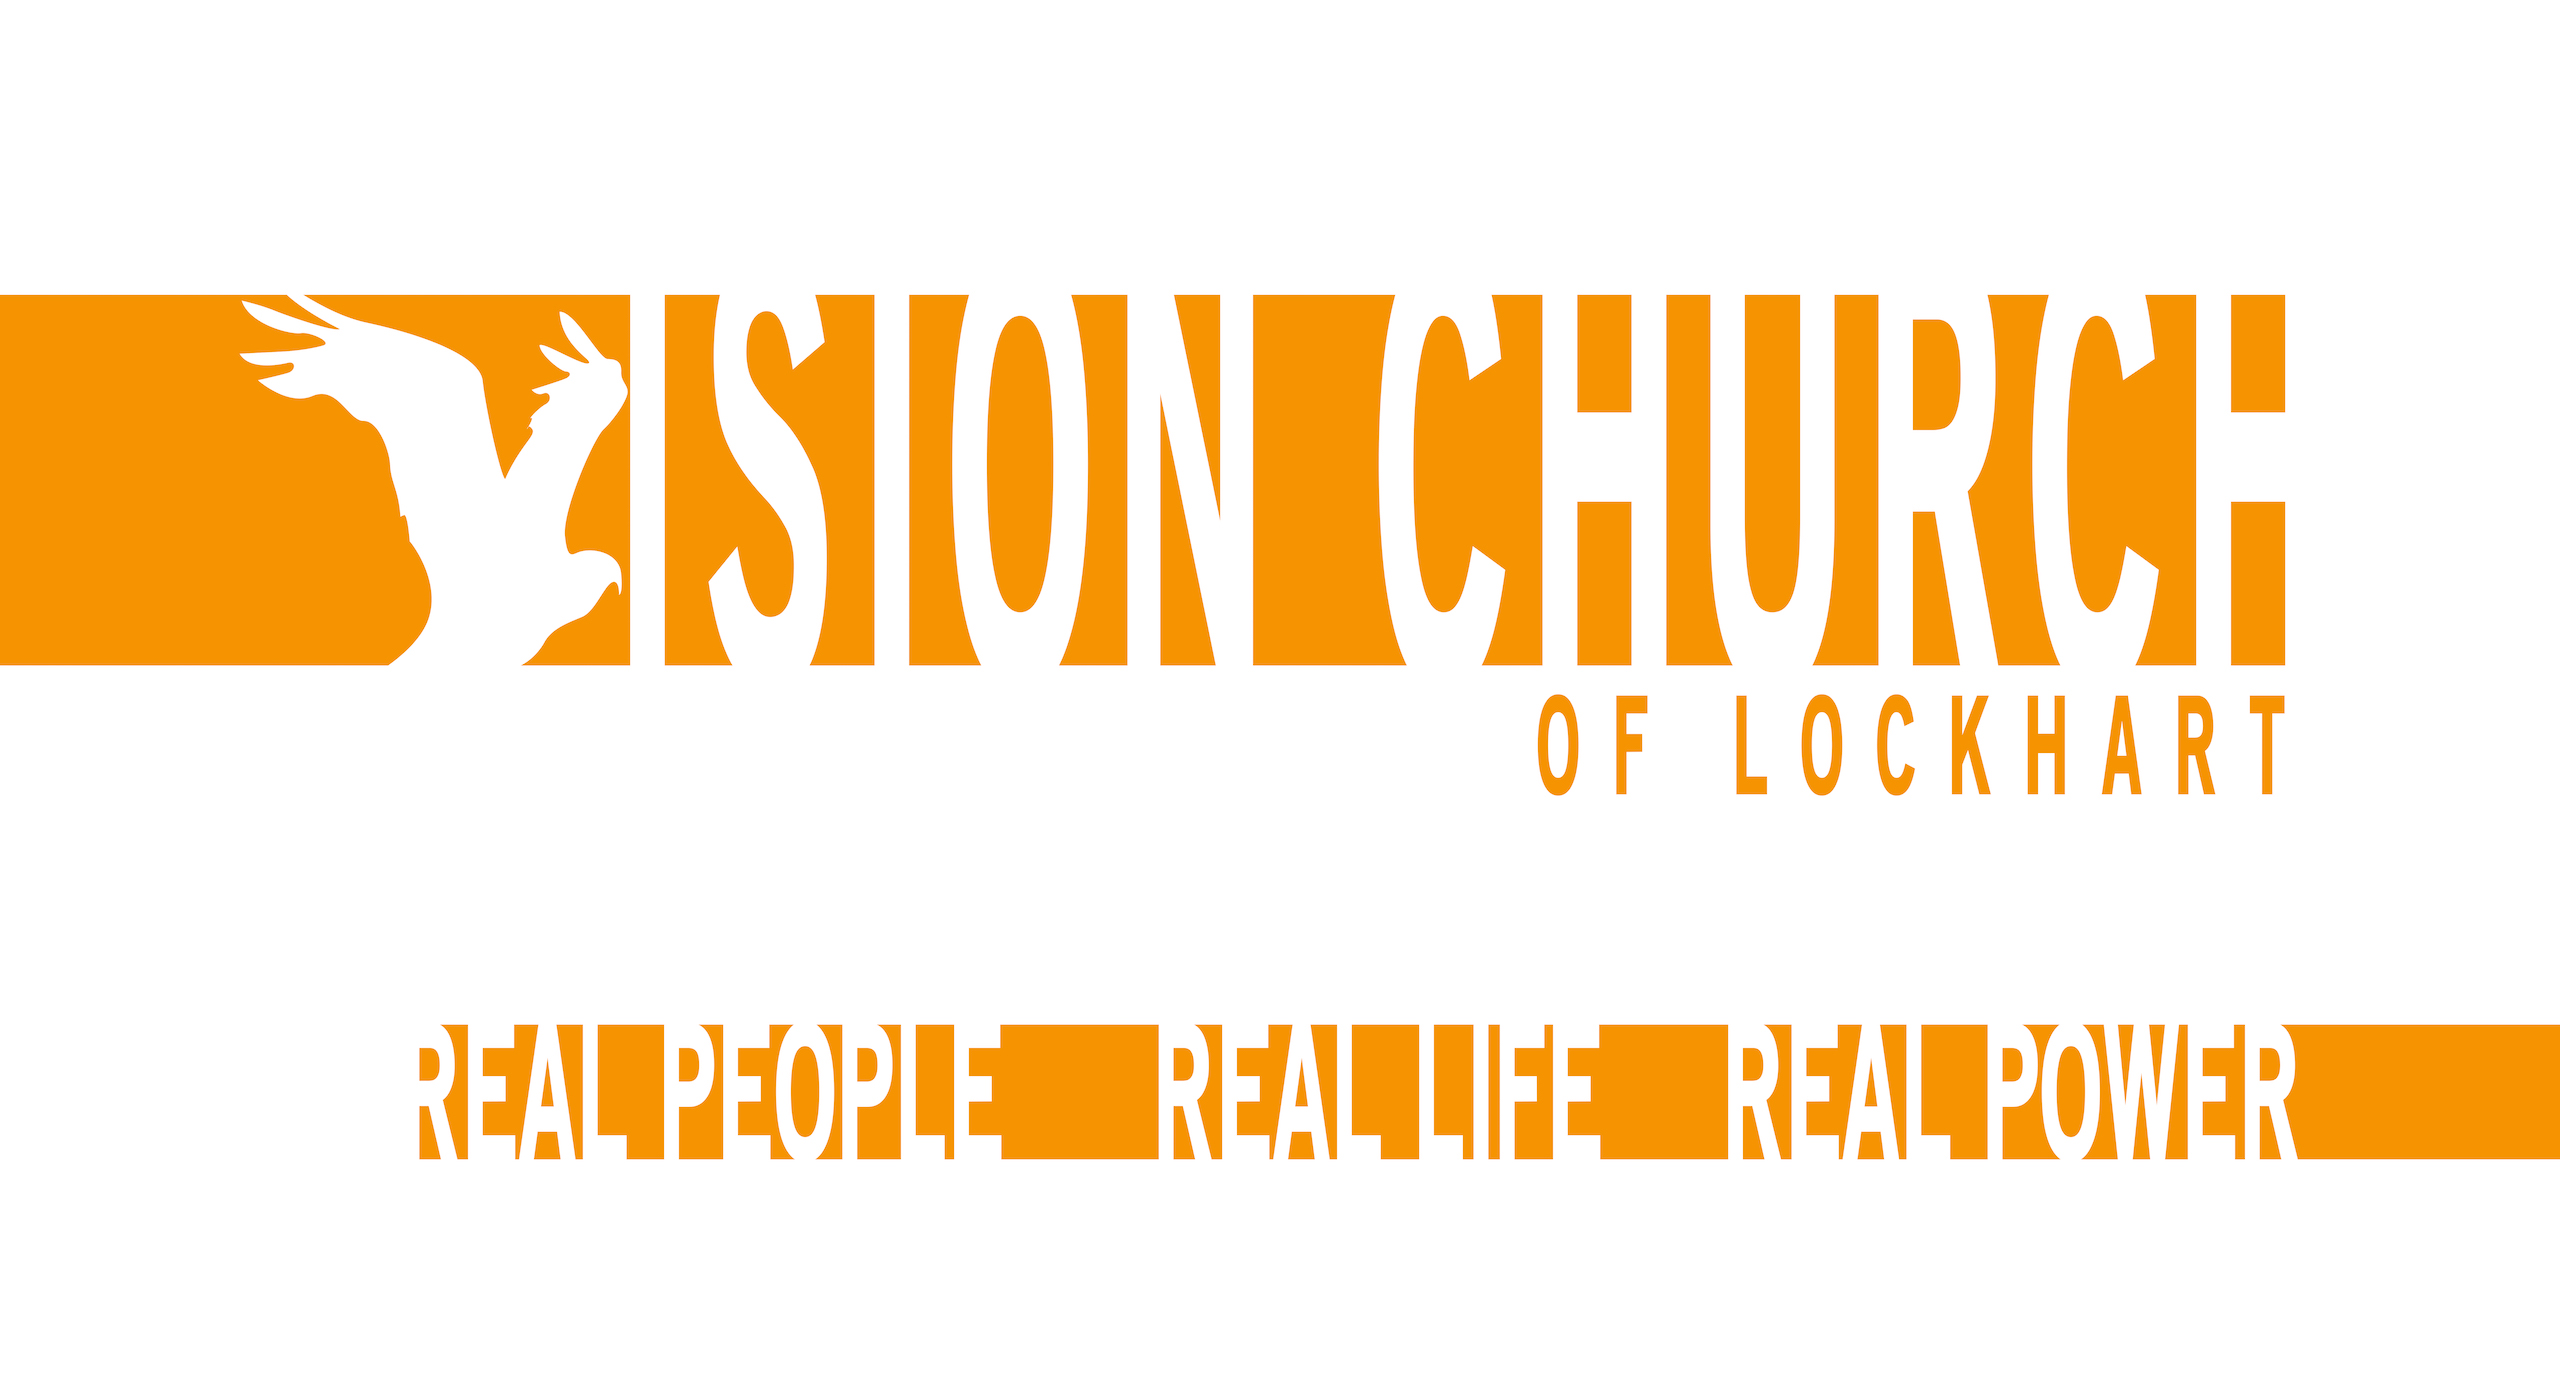 Vision Church of Lockhart